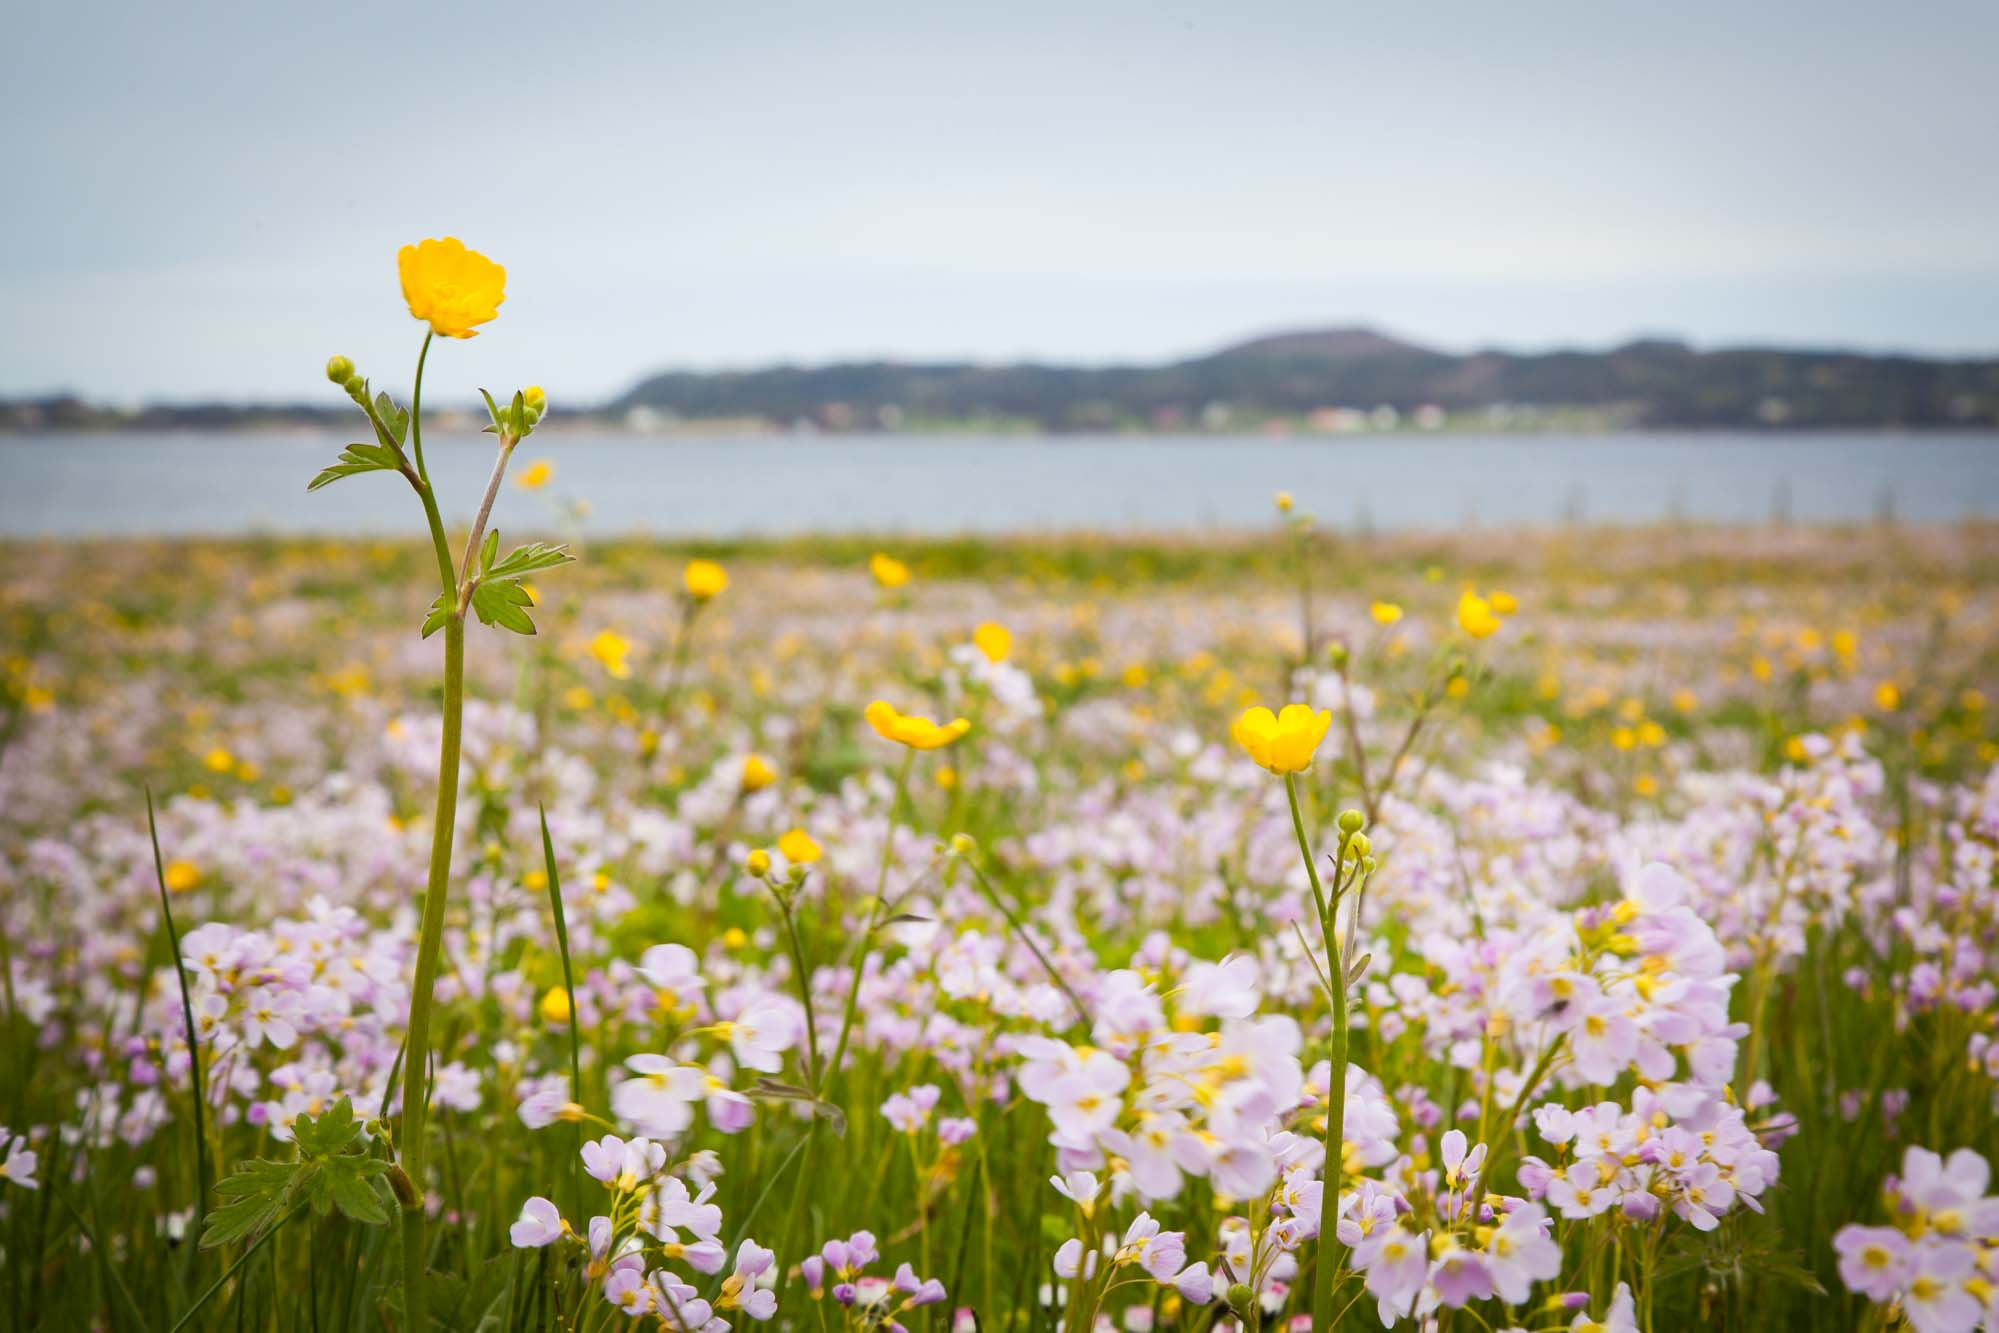 Flower field at Haramsøy, Norway. Photo: John Einar Sandvand